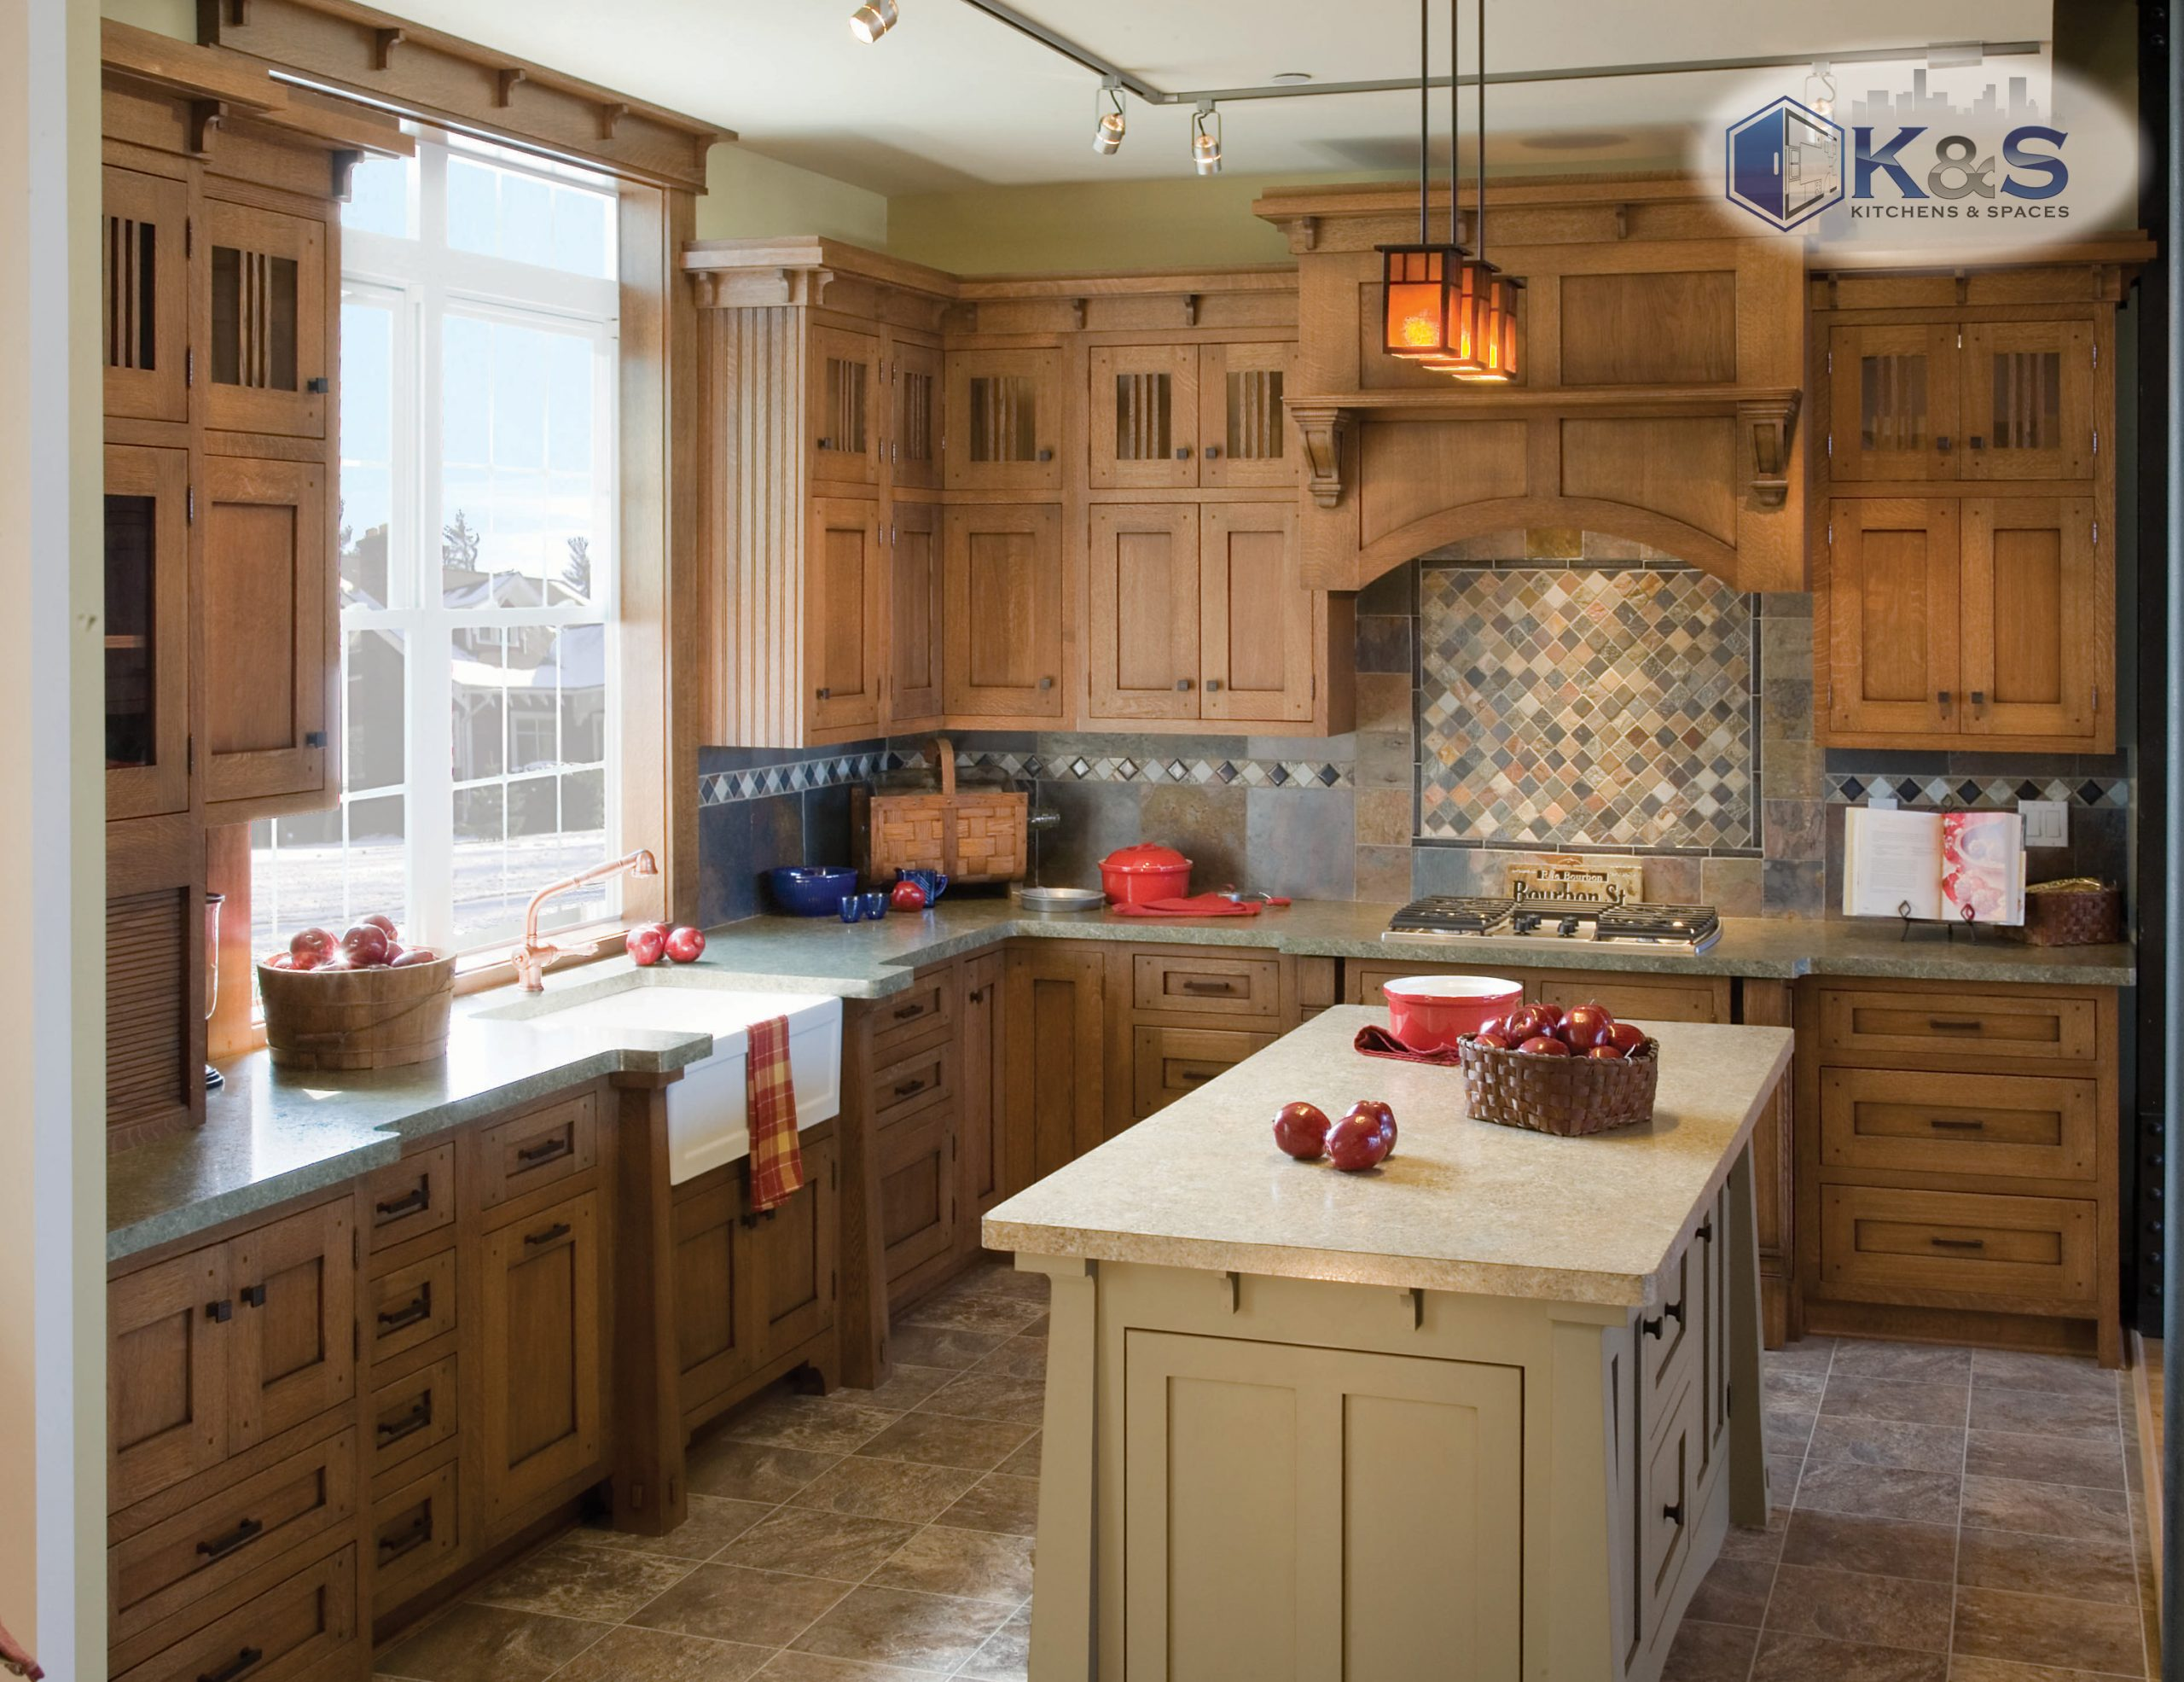 Clarendon Hills kitchen remodel